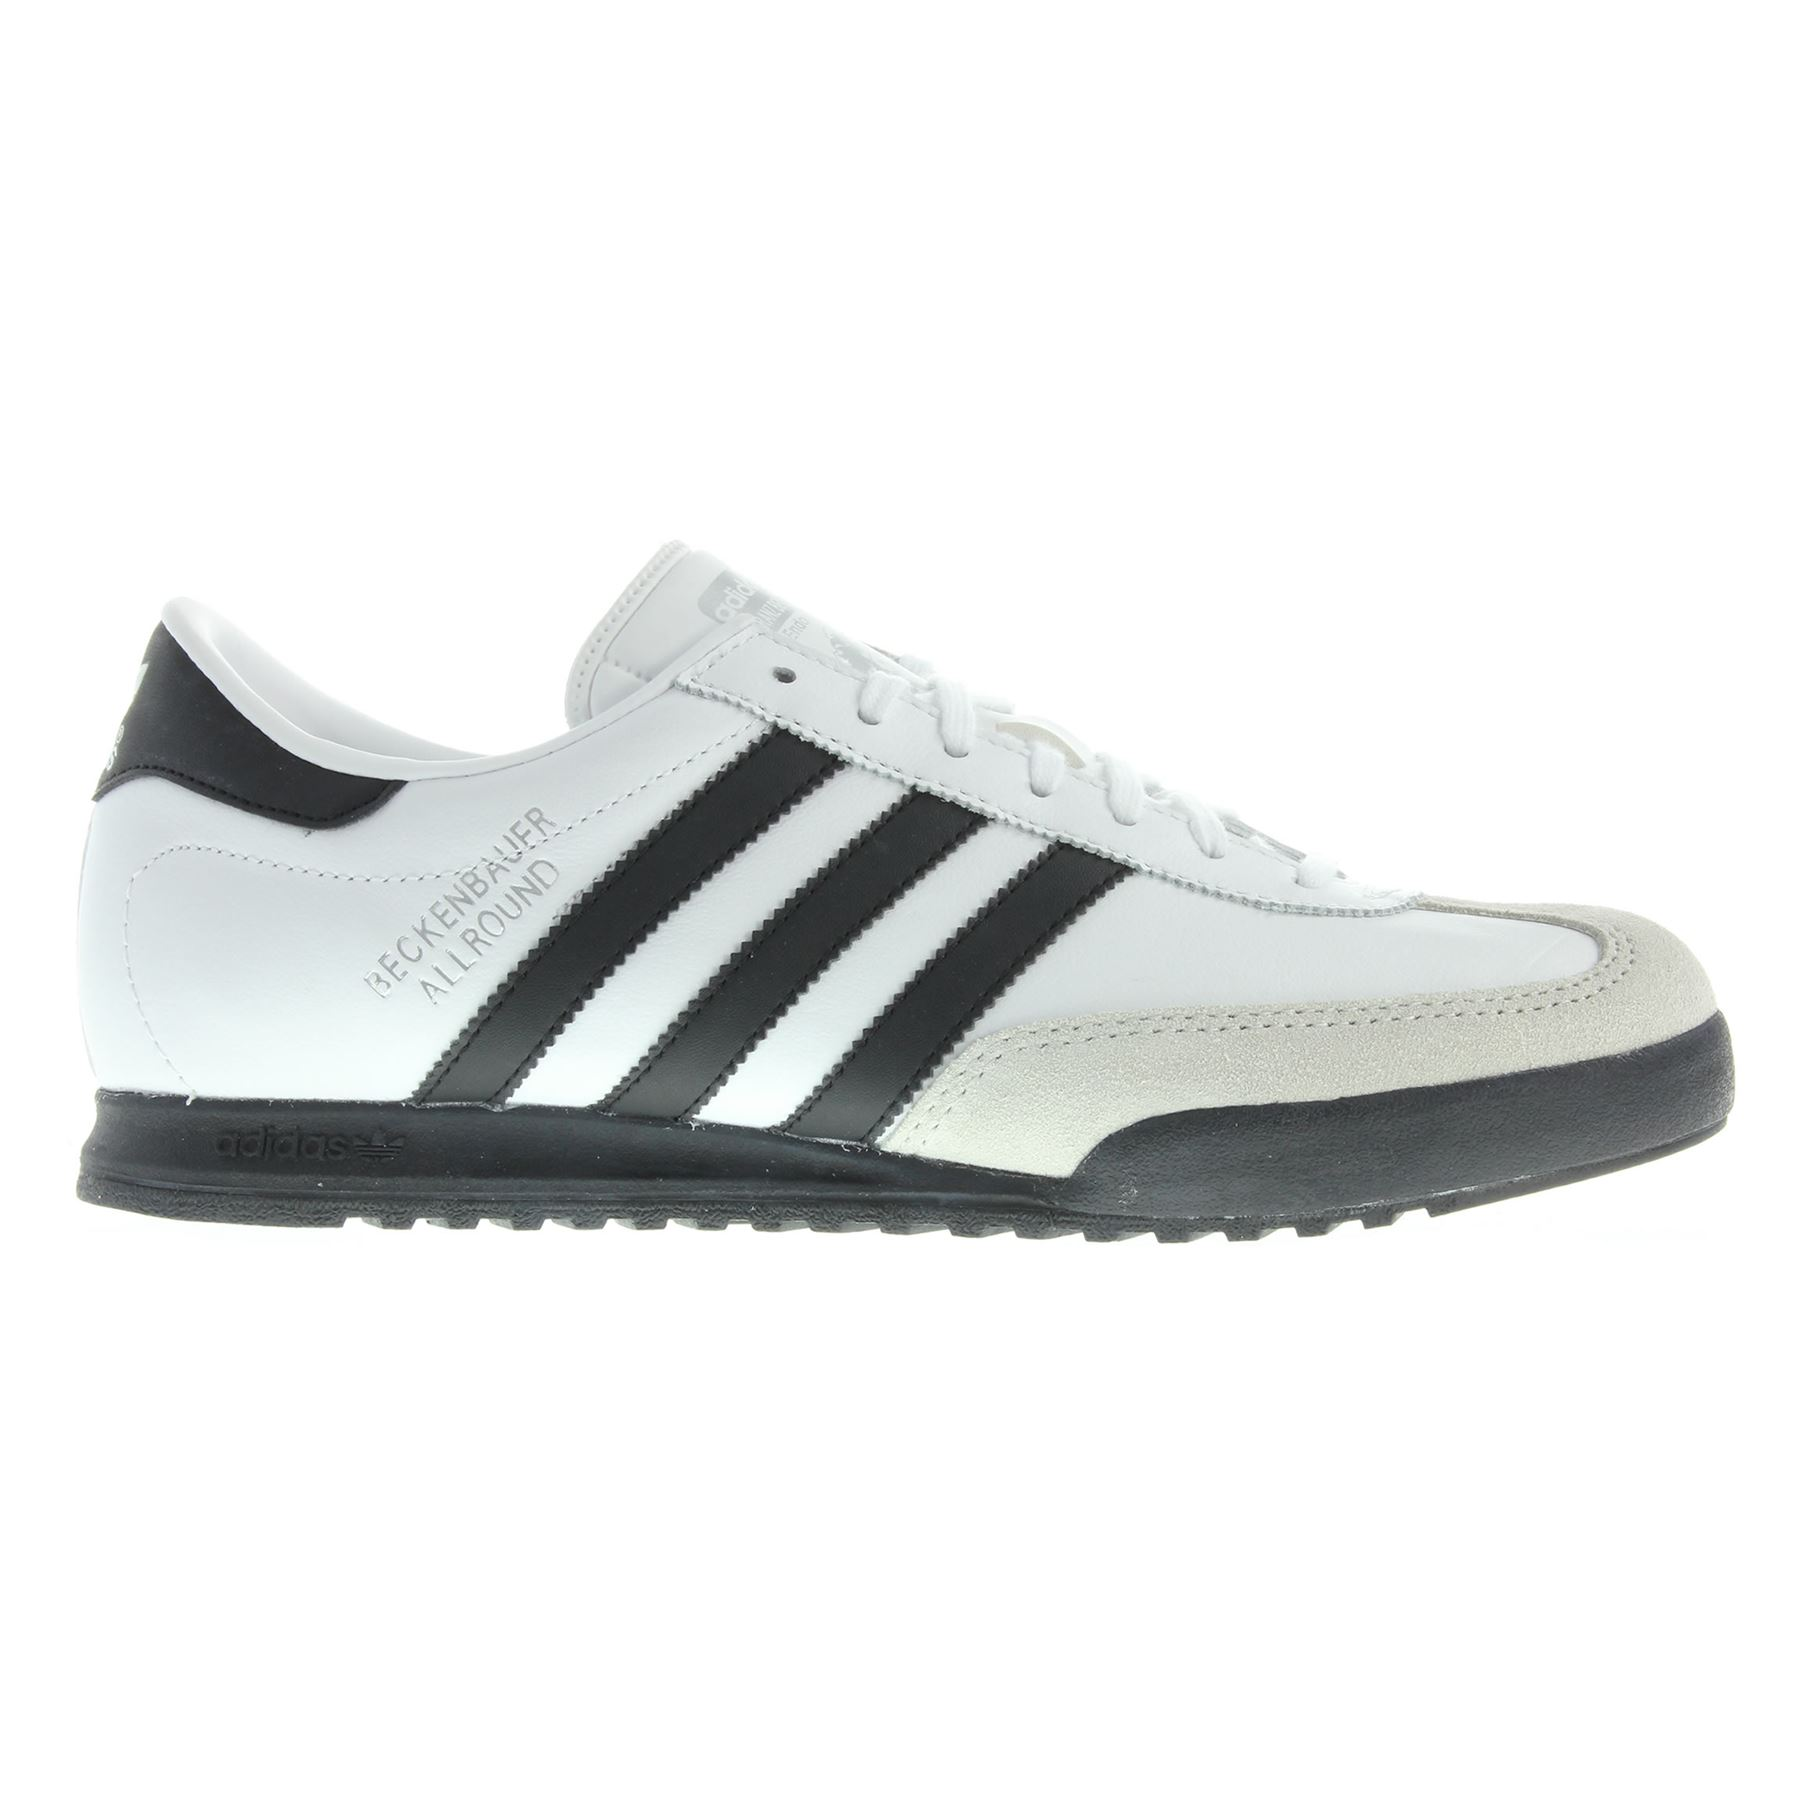 Details about ADIDAS ORIGINALS MEN S TRAINERS BECKENBAUER ALL ROUND BLUE  WHITE BLACK BROWN 334f21ad5